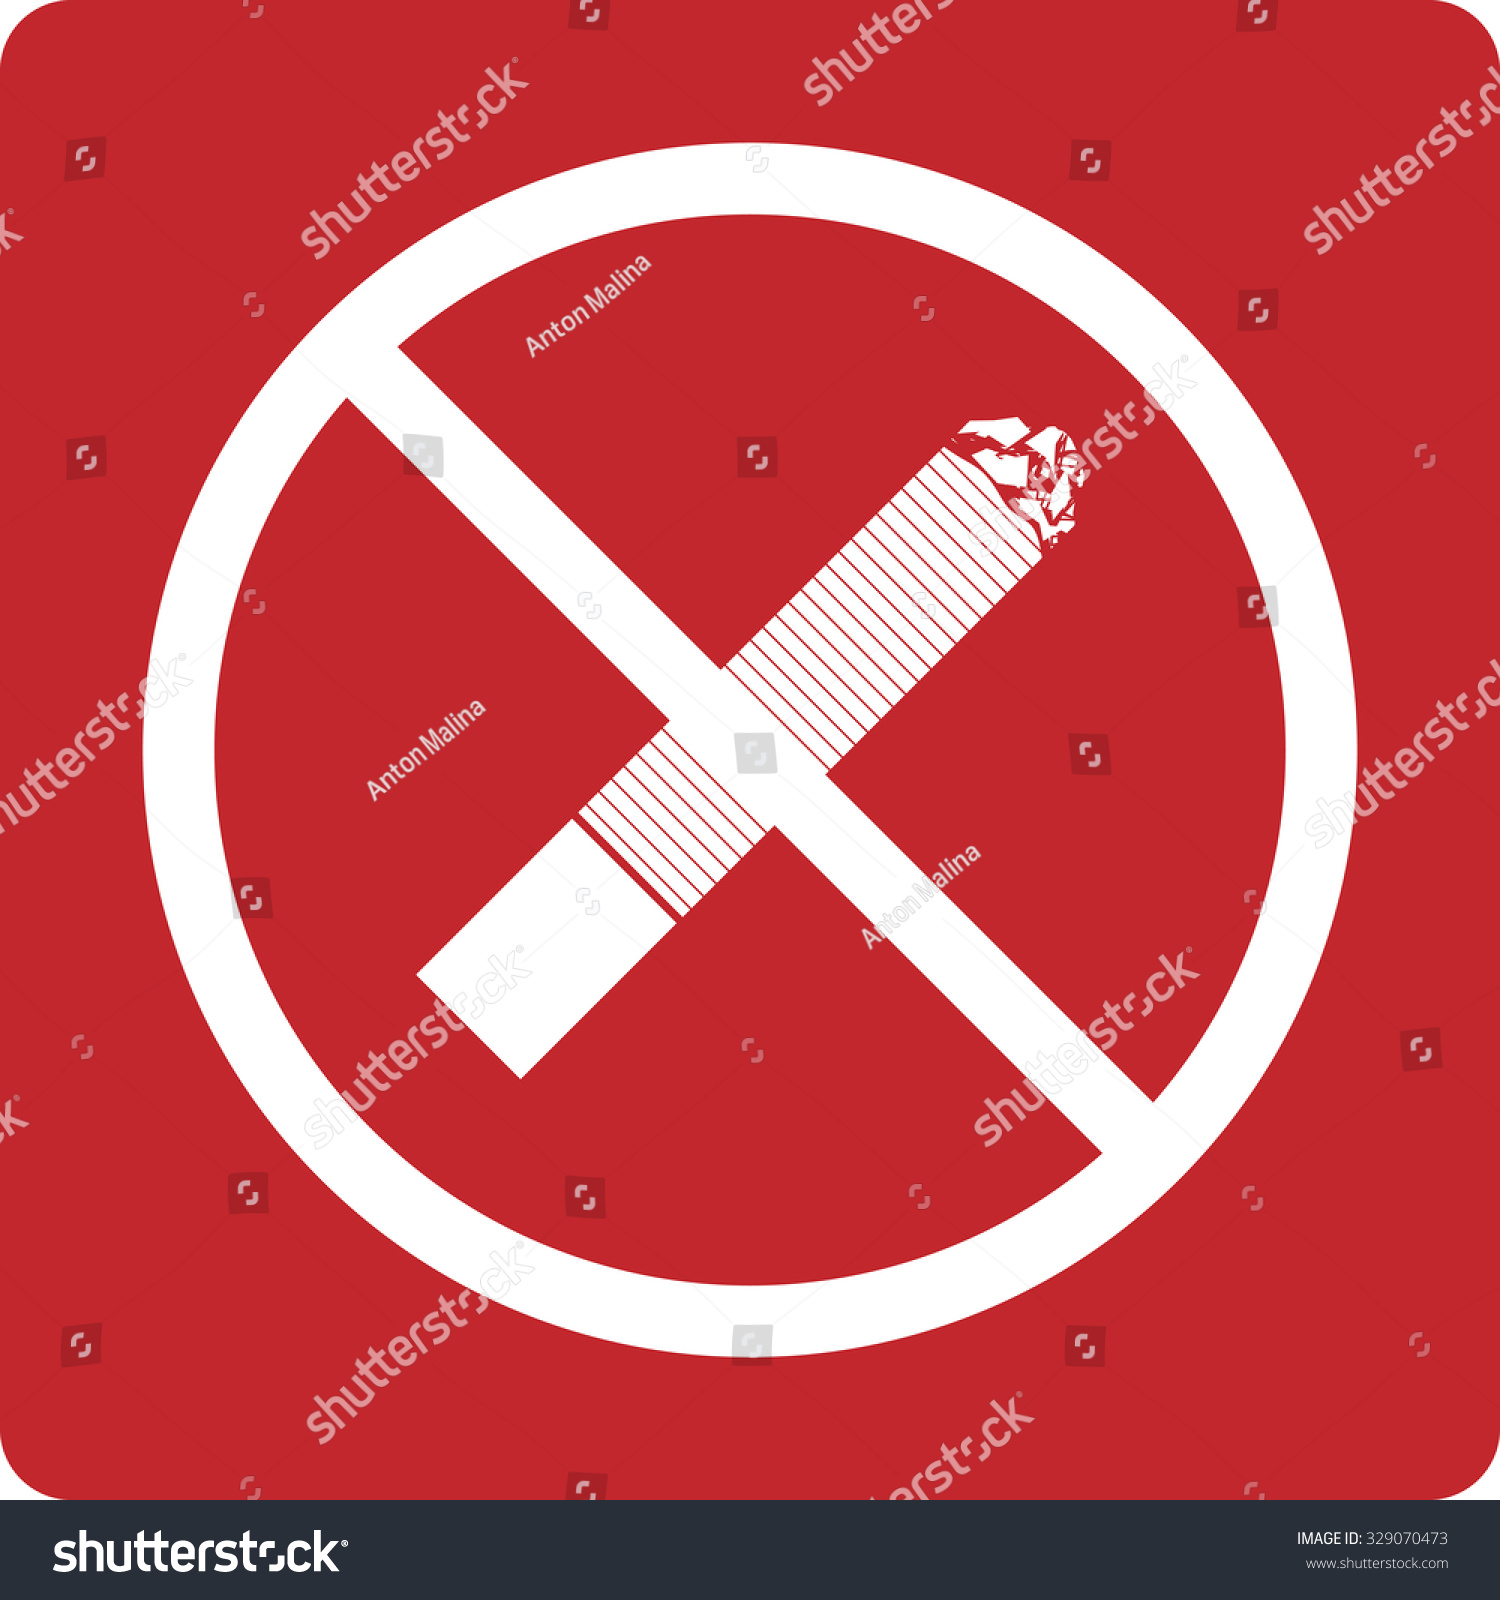 No smoking sign no smoke icon stock vector 329070473 shutterstock no smoking sign no smoke icon stop smoking symbol vector illustration filter buycottarizona Images